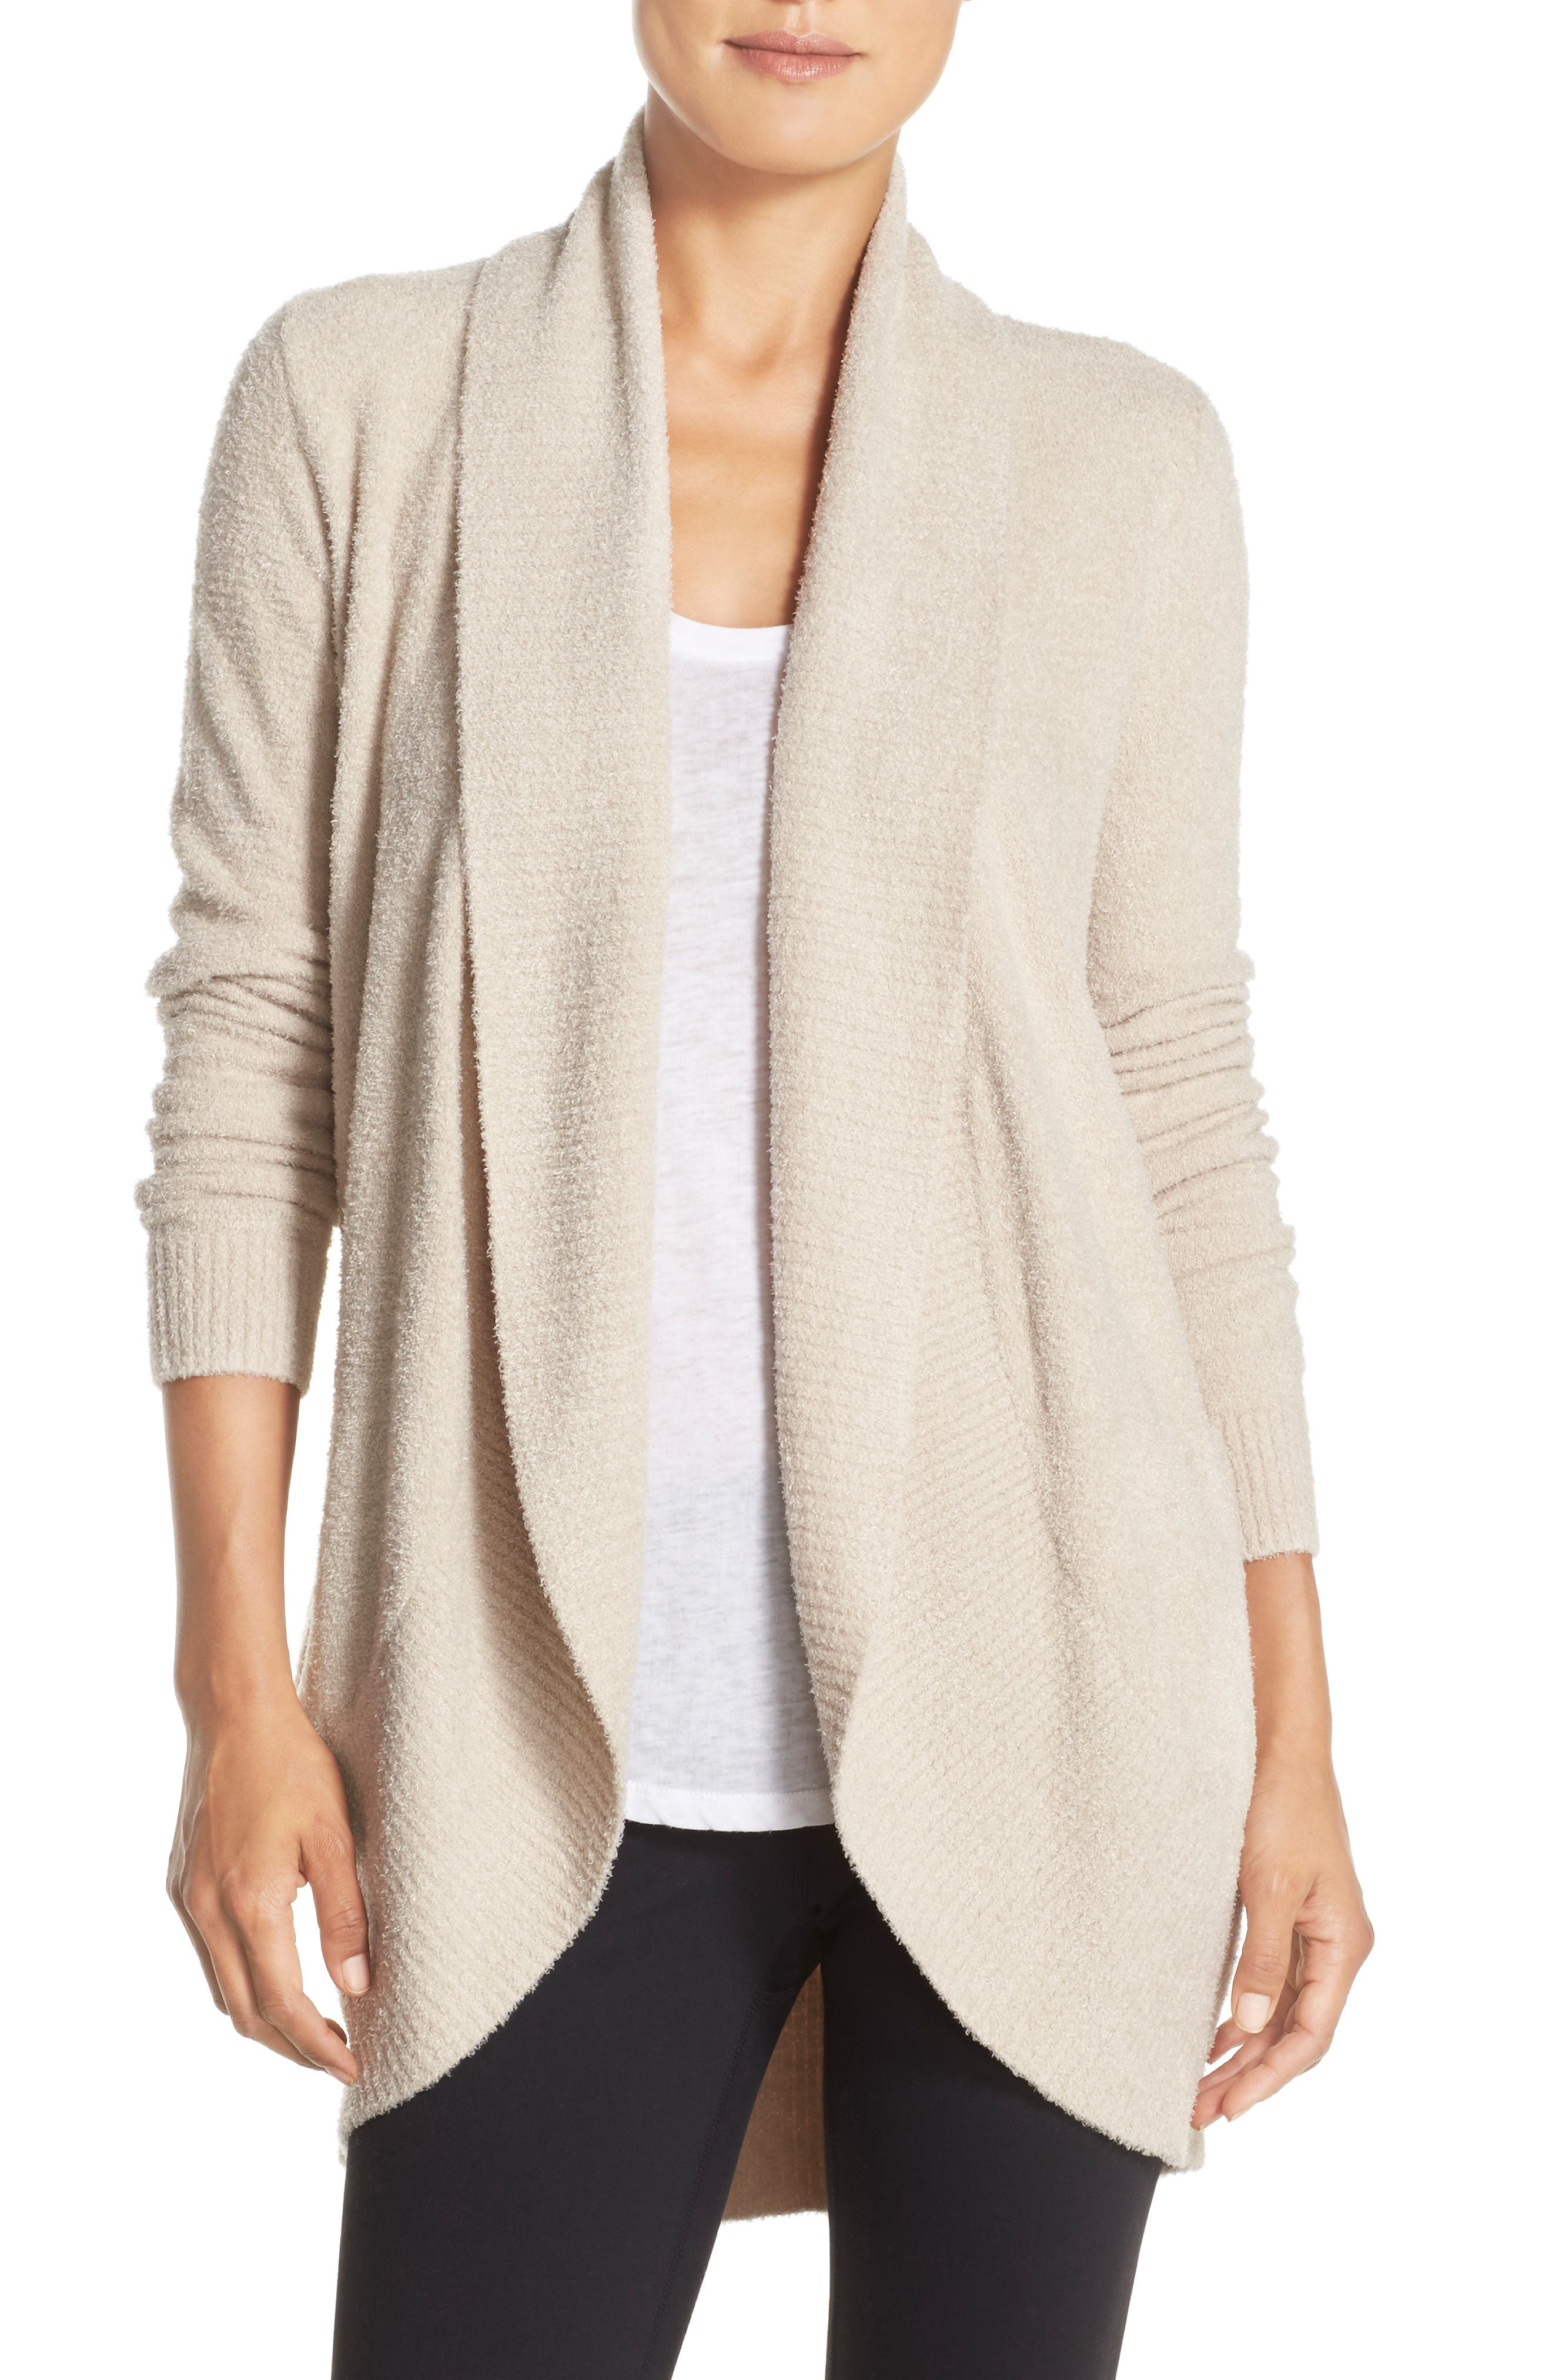 Main Image - Barefoot Dreams® CozyChic Lite® Circle Cardigan